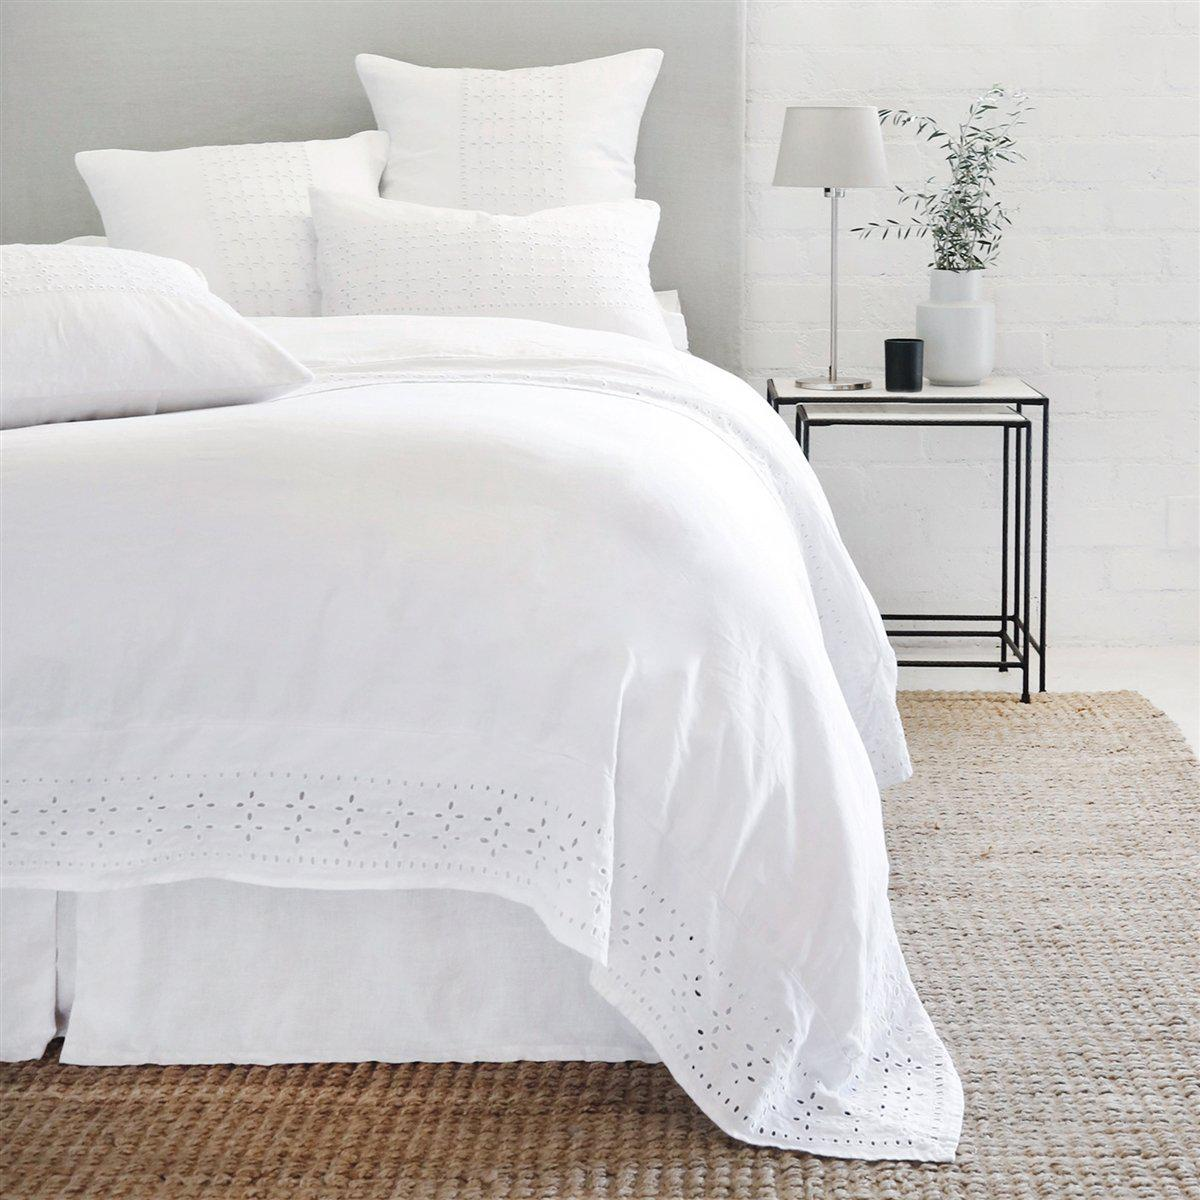 Layla Duvet by Pom Pom at Home-Bed & Bath-Queen-White-A Cottage in the City